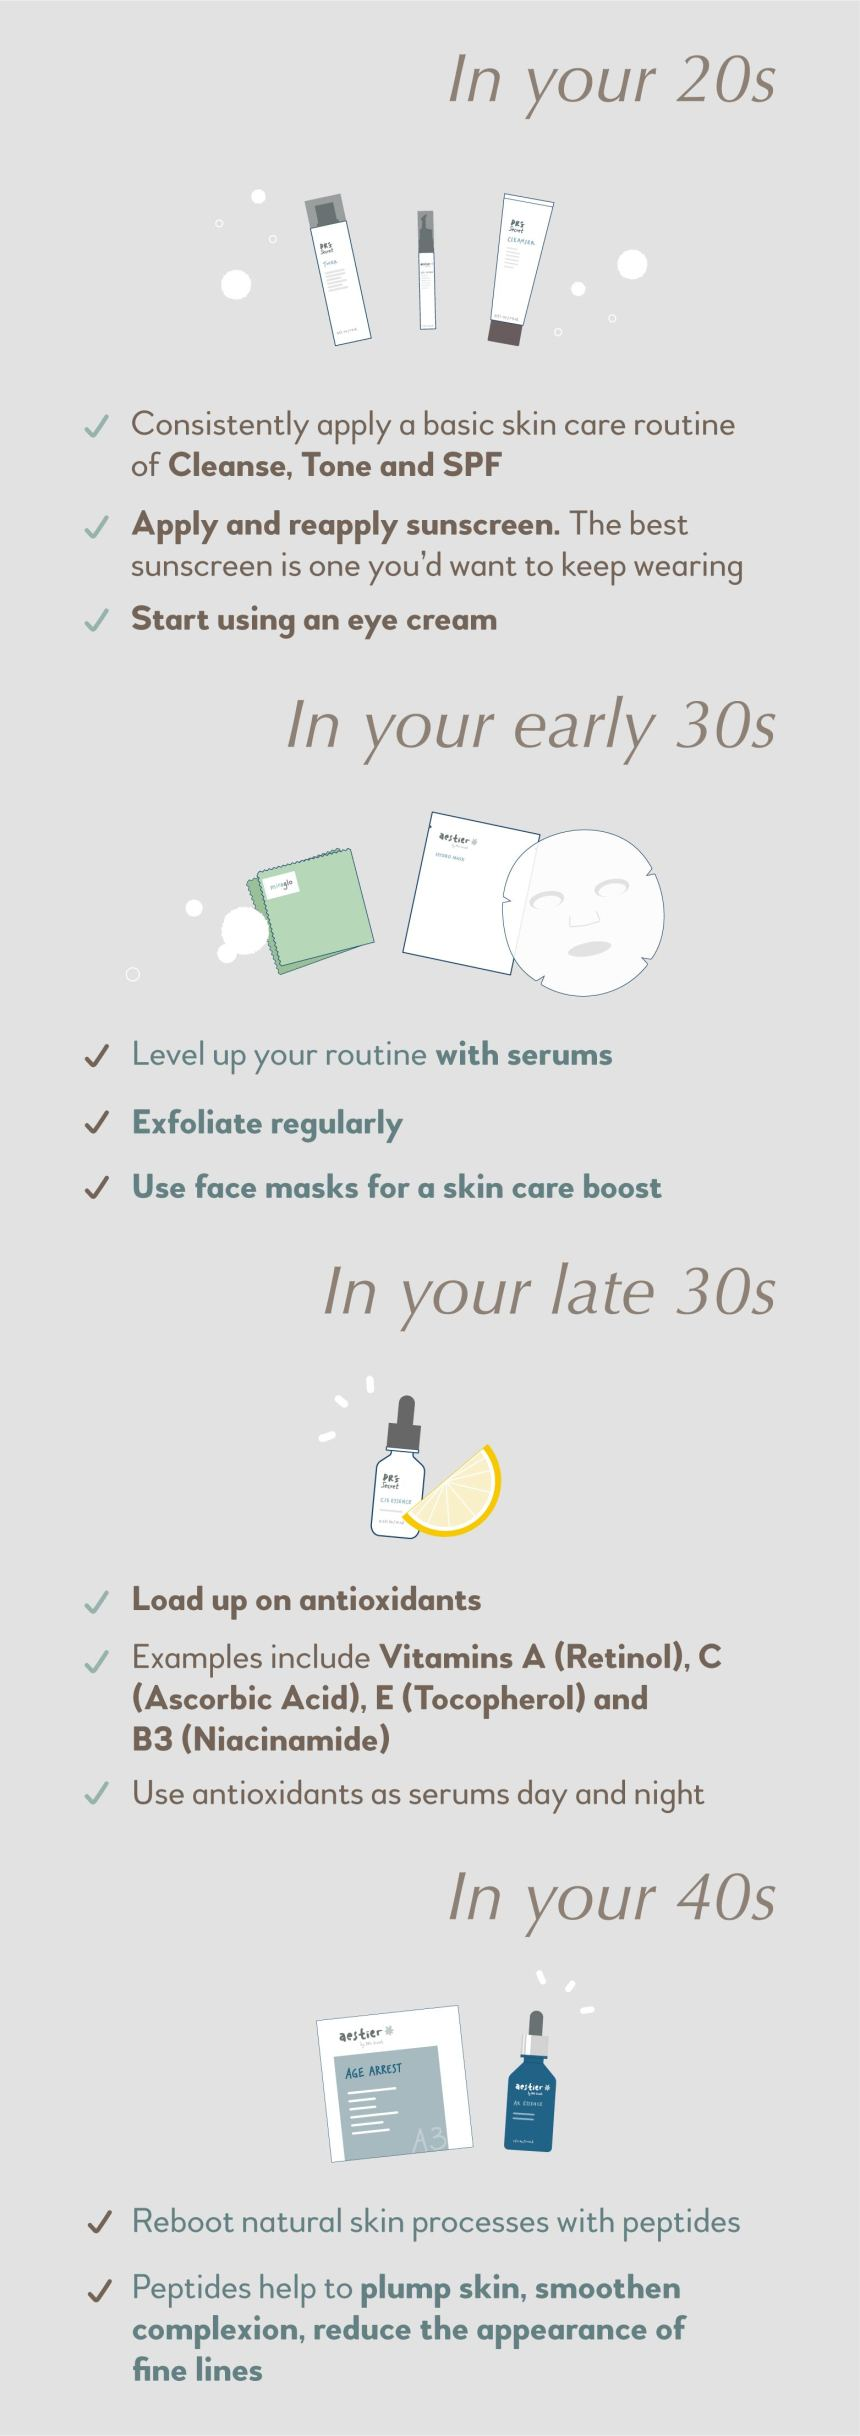 Summary of the anti-aging routine